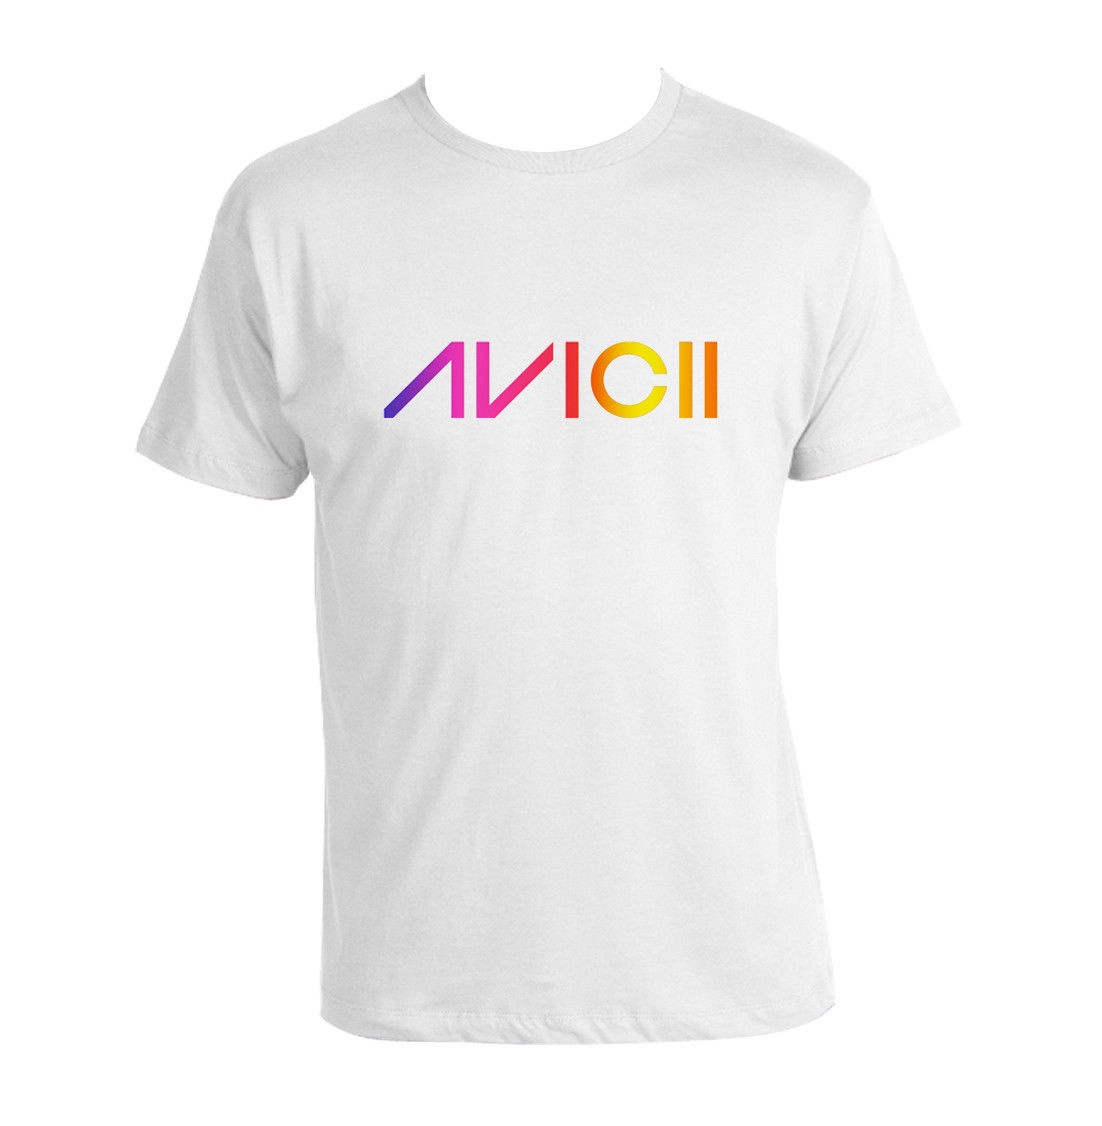 Avicii T-Shirt unisex printed Tee avicii EDM Legend Dance Music white Cheap wholesale tees,100% Cotton For Man,T shirt printing image